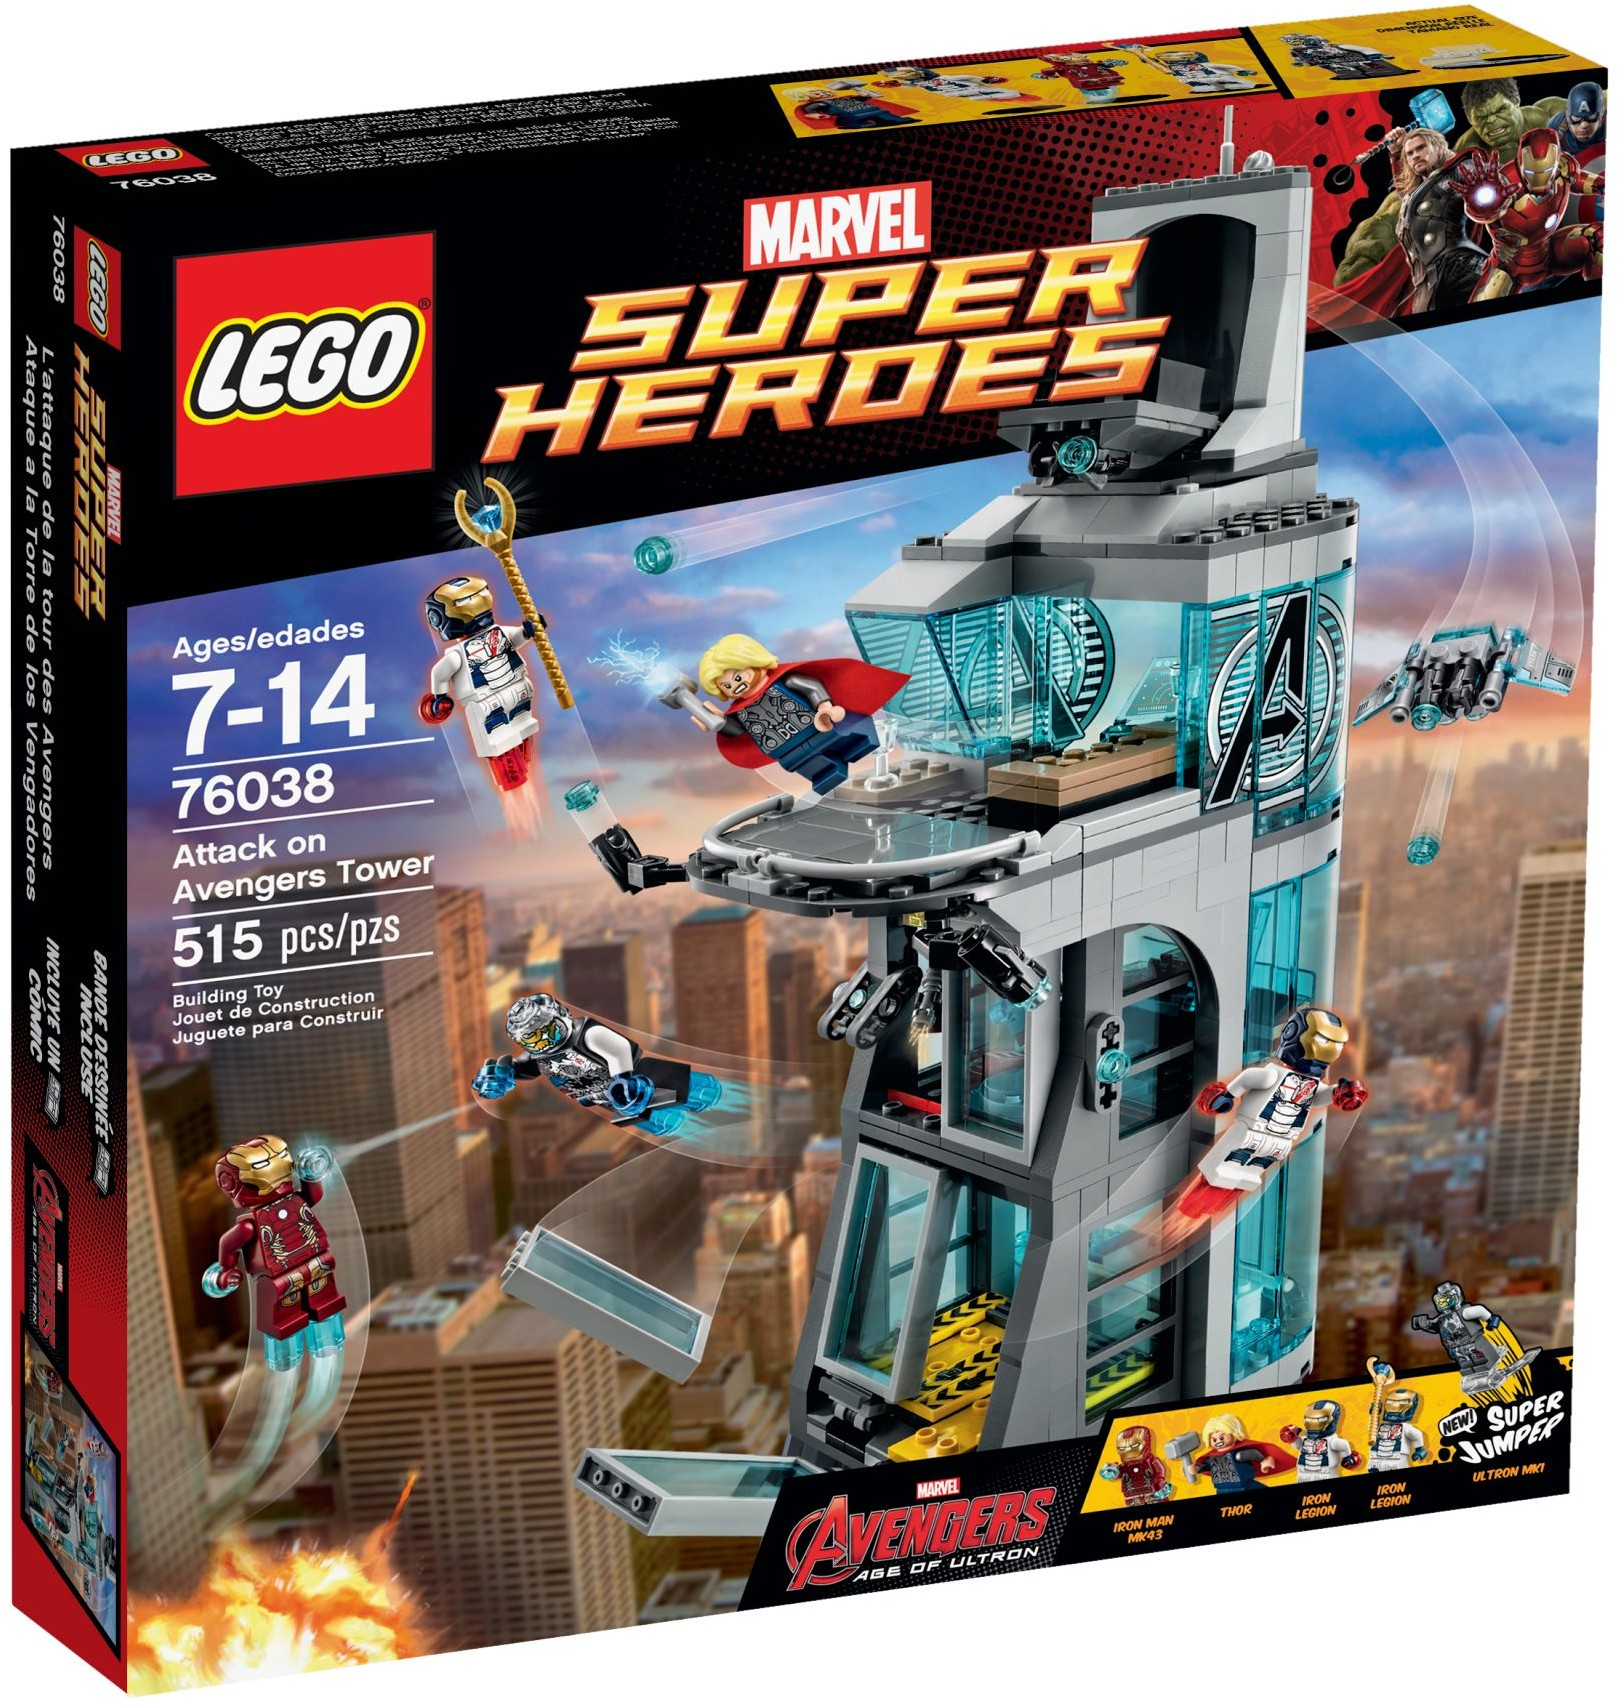 LEGO 76038 - Super Heroes - Attack on Avengers Tower